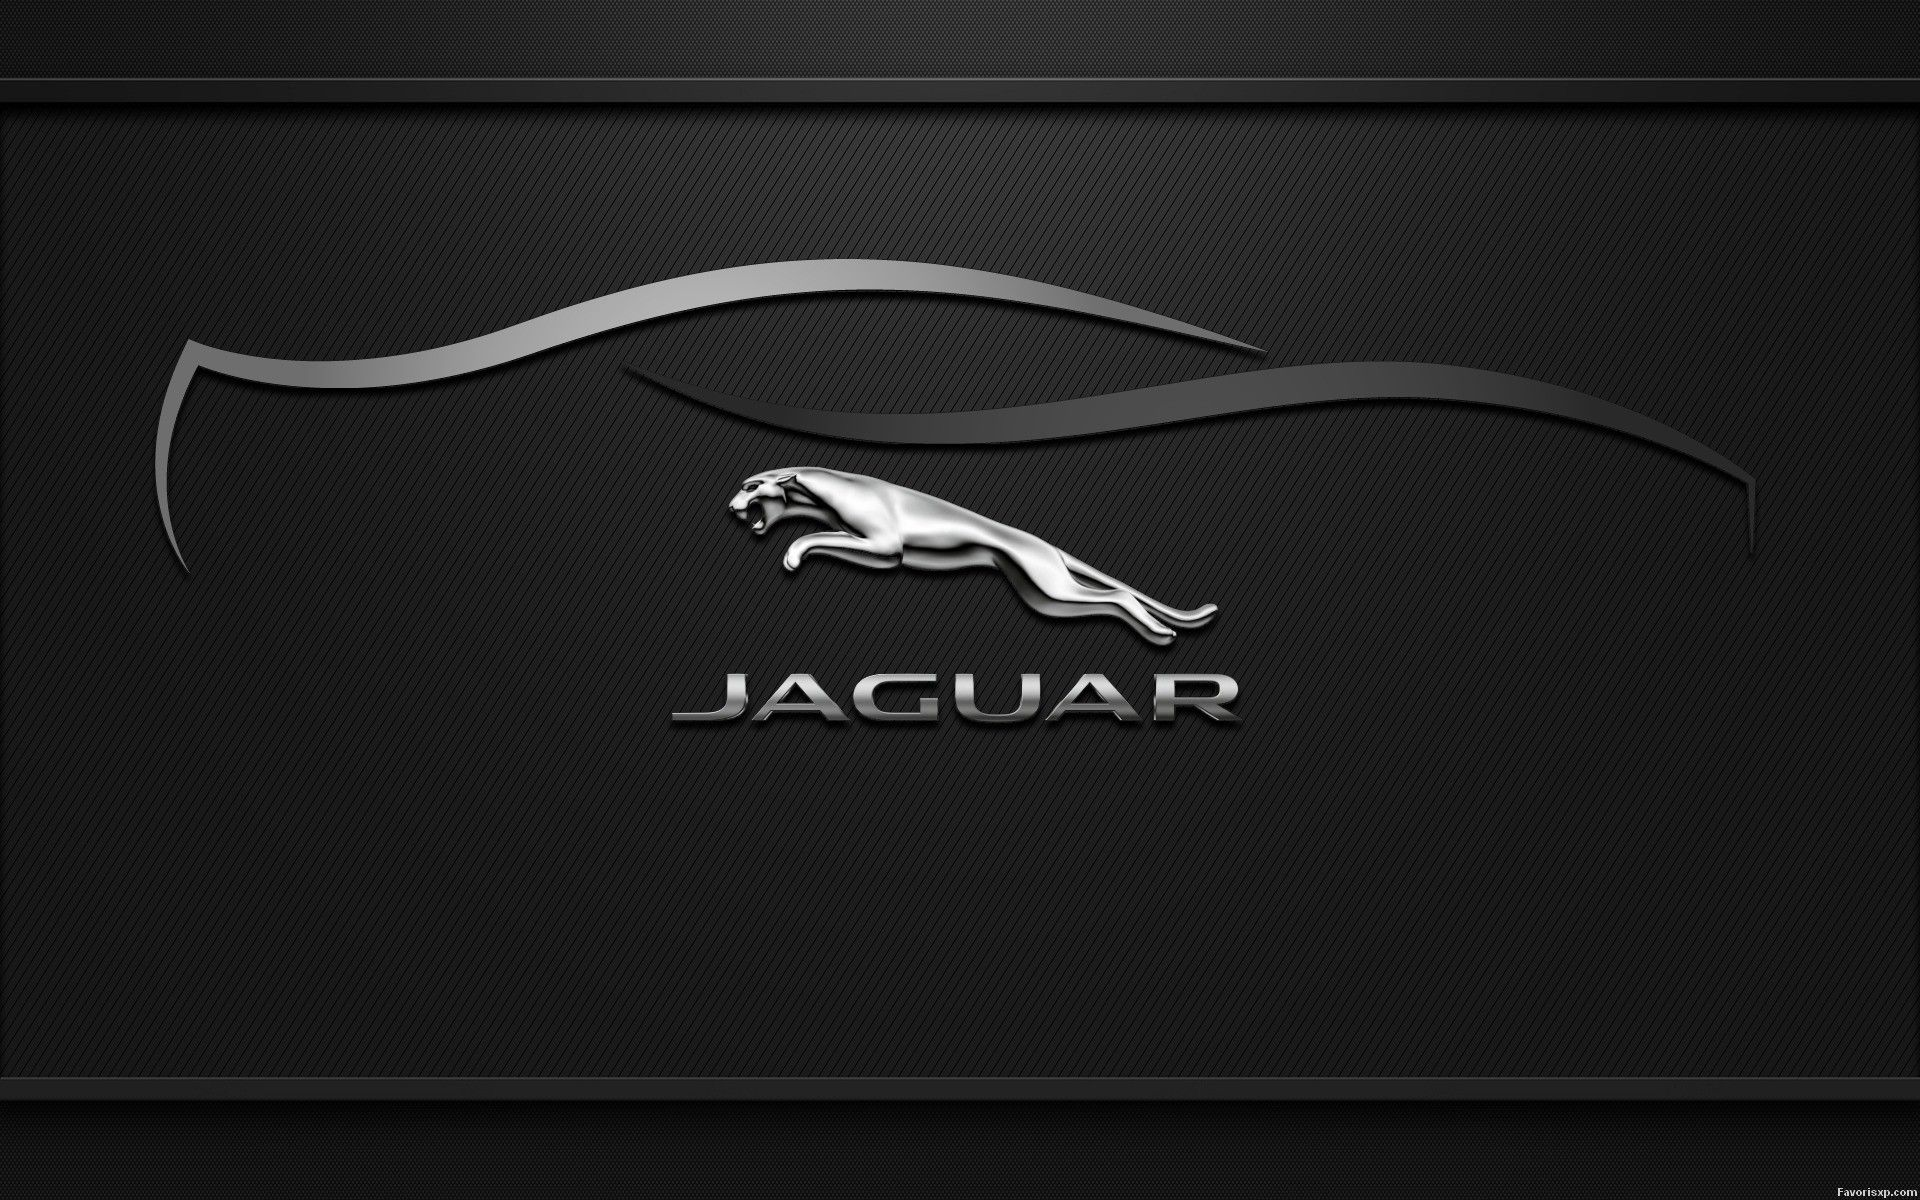 Jaguar Car Logo Wallpapers Desktop On Wallpaper 1080p HD